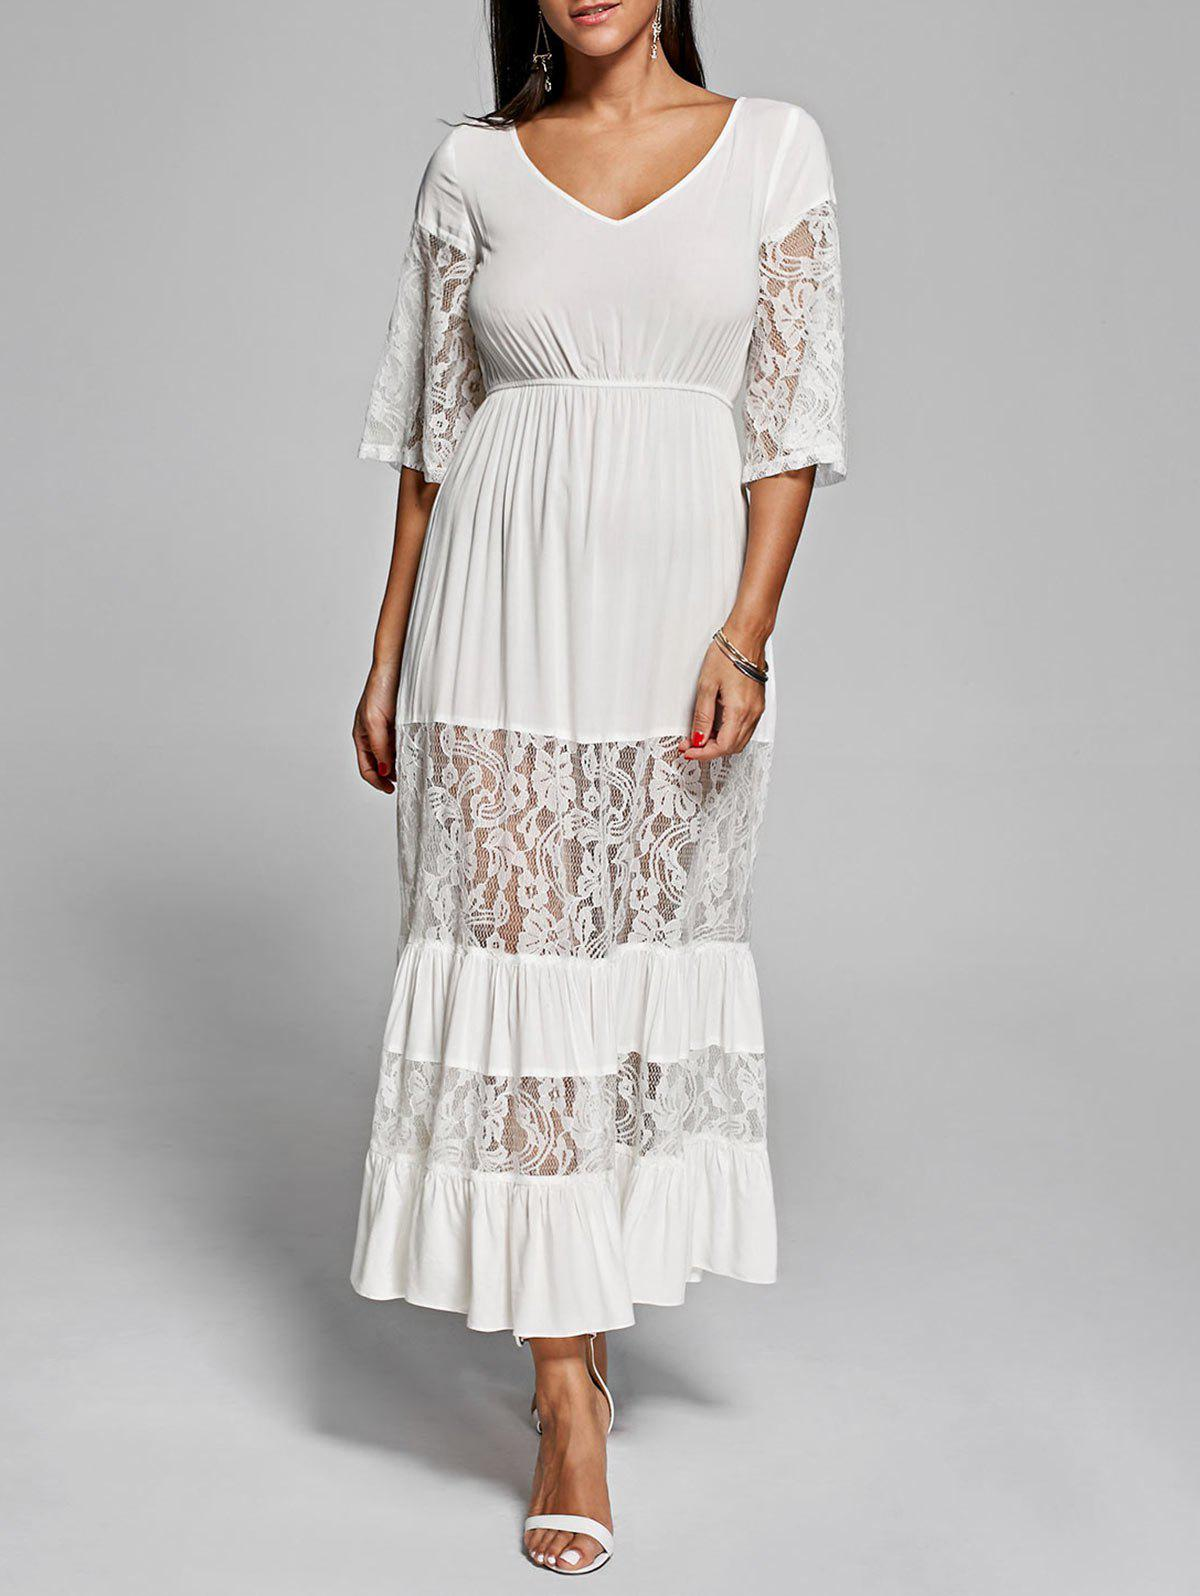 Lace Insert V Neck Romantic Boho Maxi Dress - OFF WHITE 2XL